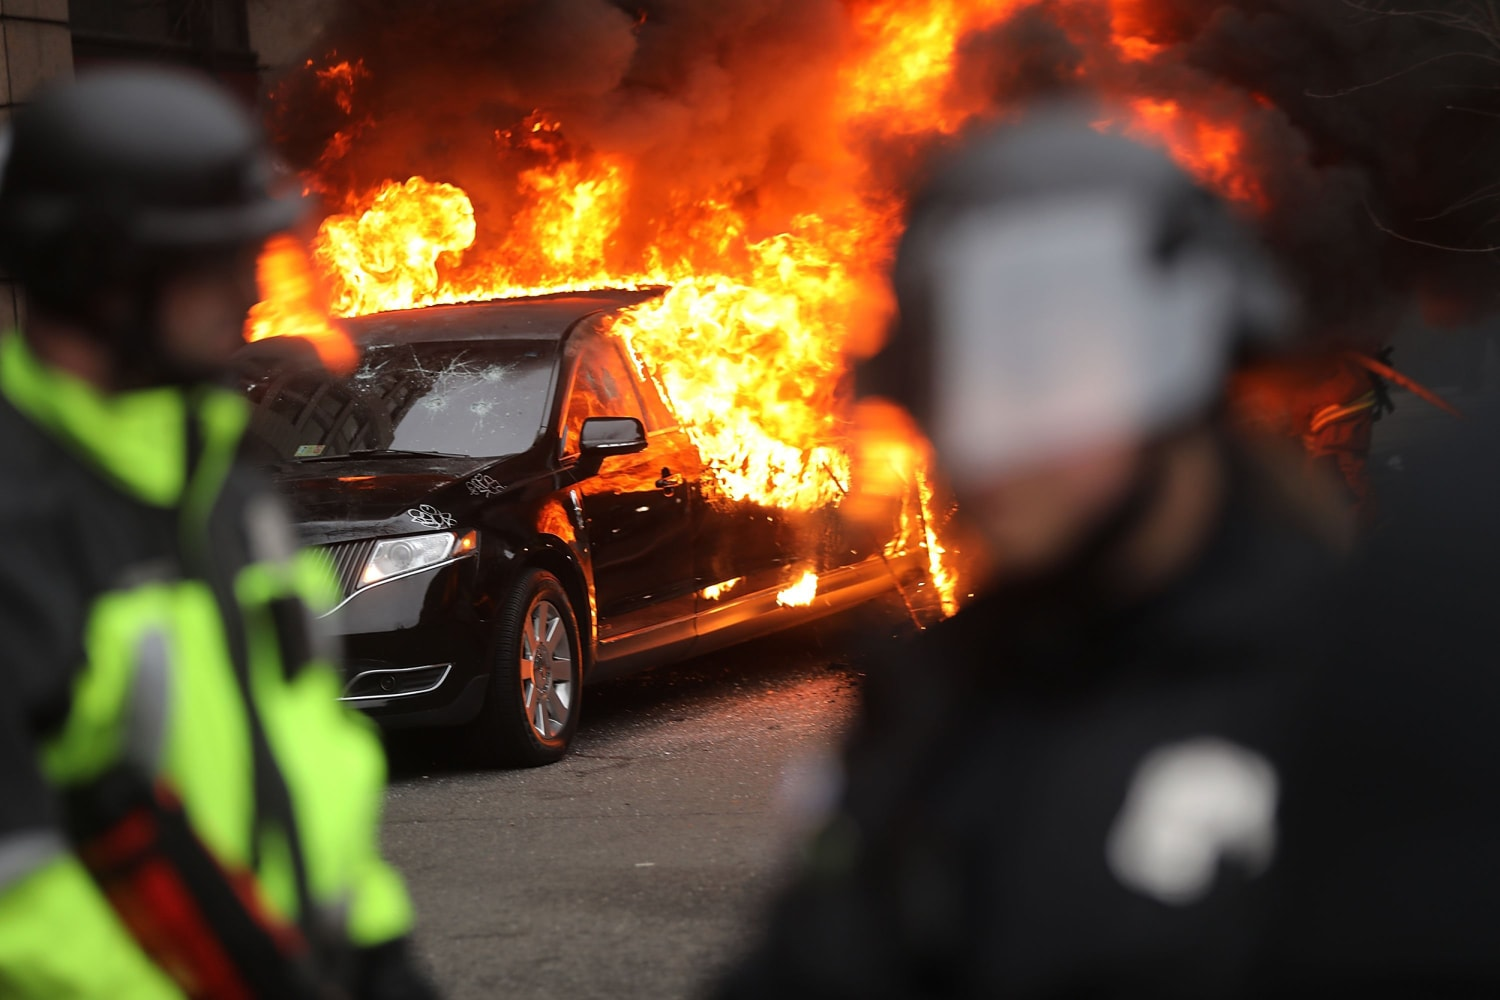 Image: Police and demonstrators clash in downtown Washington, D.C. after a limo was set